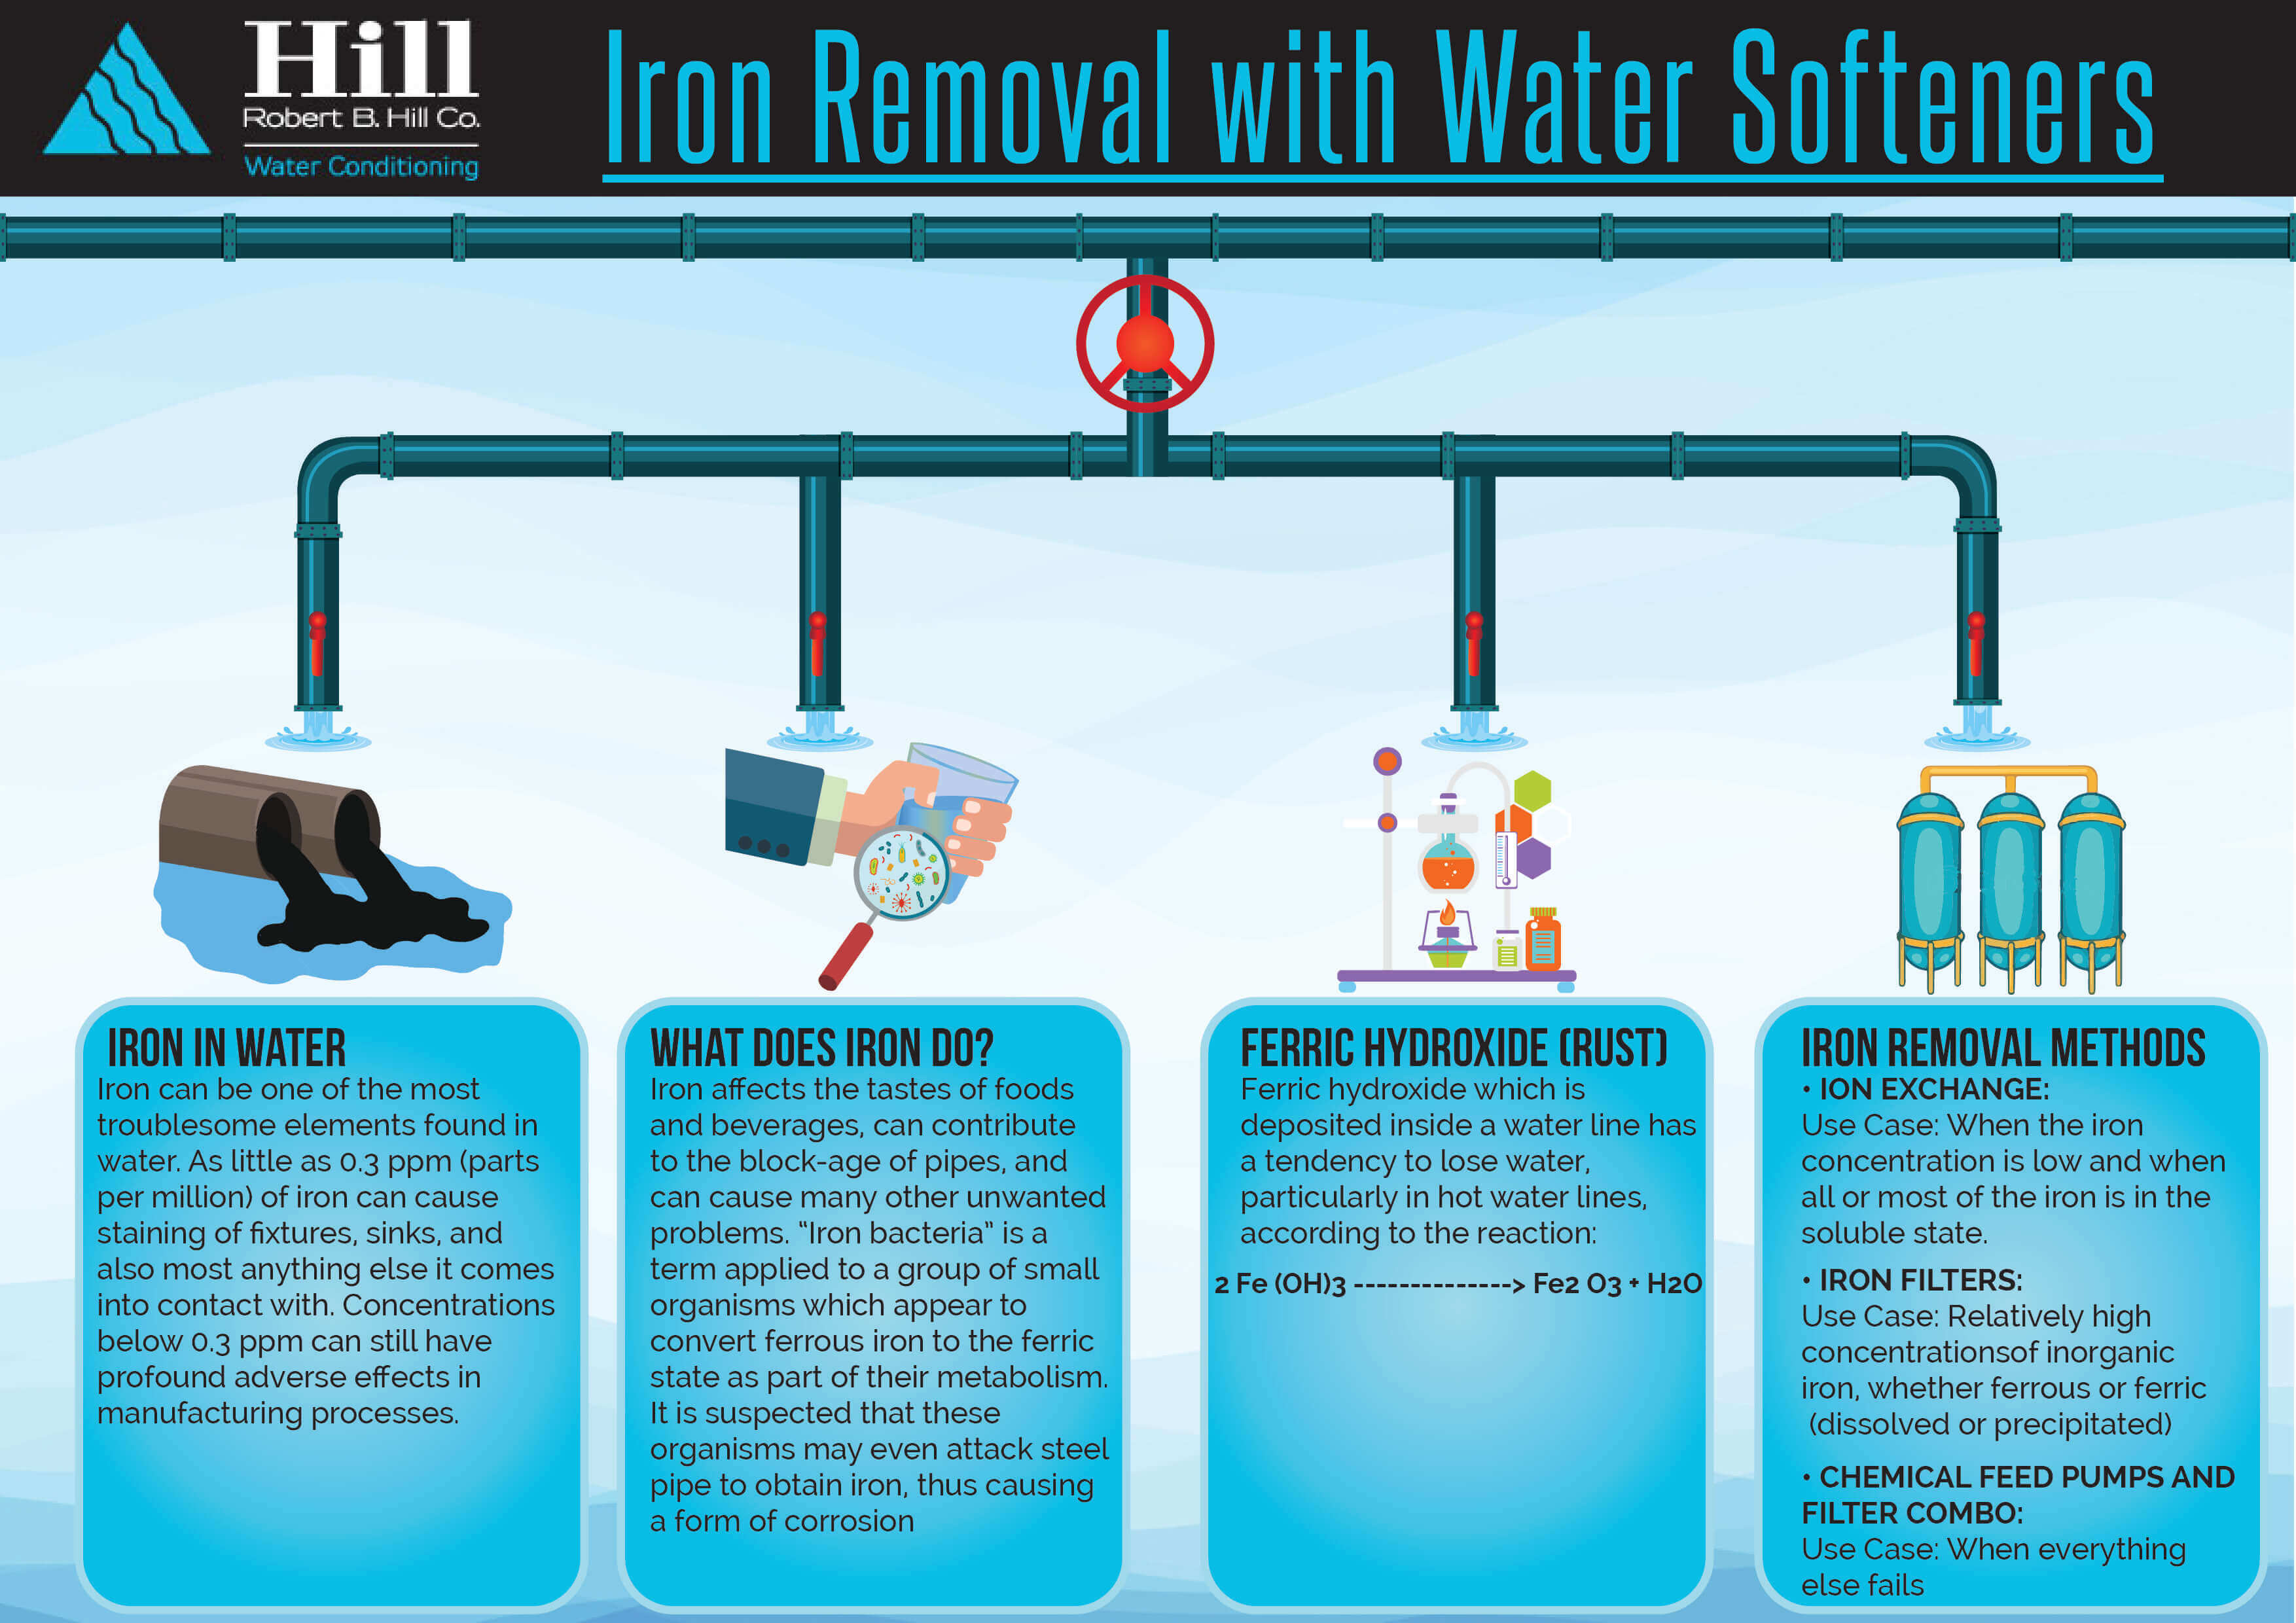 Iron Removal With Water Softeners And Traditional Iron